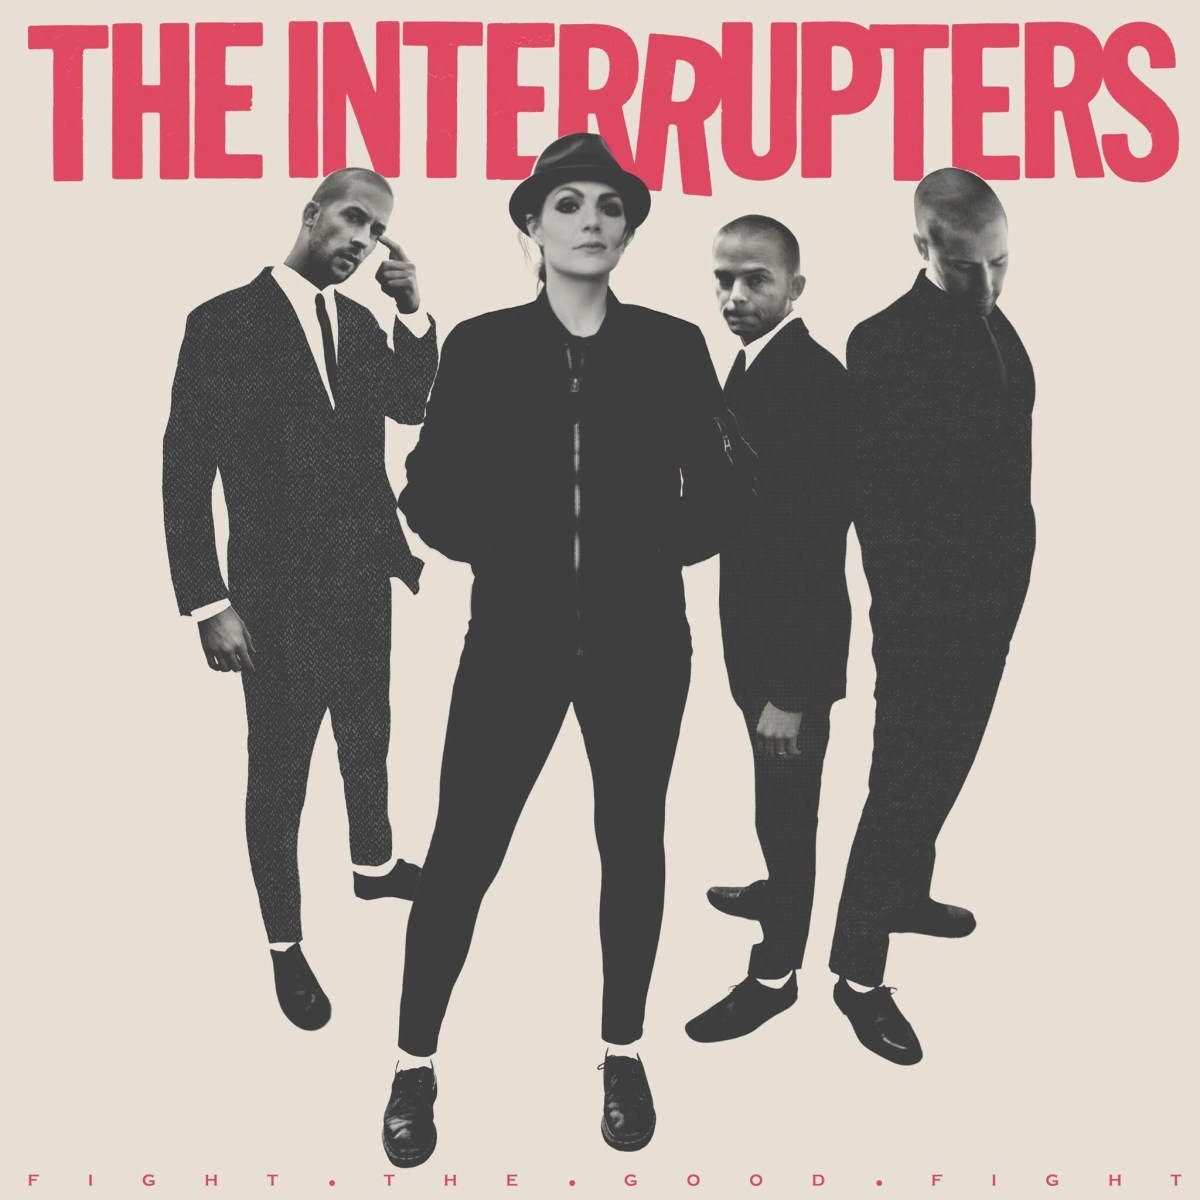 The Interrupters album review